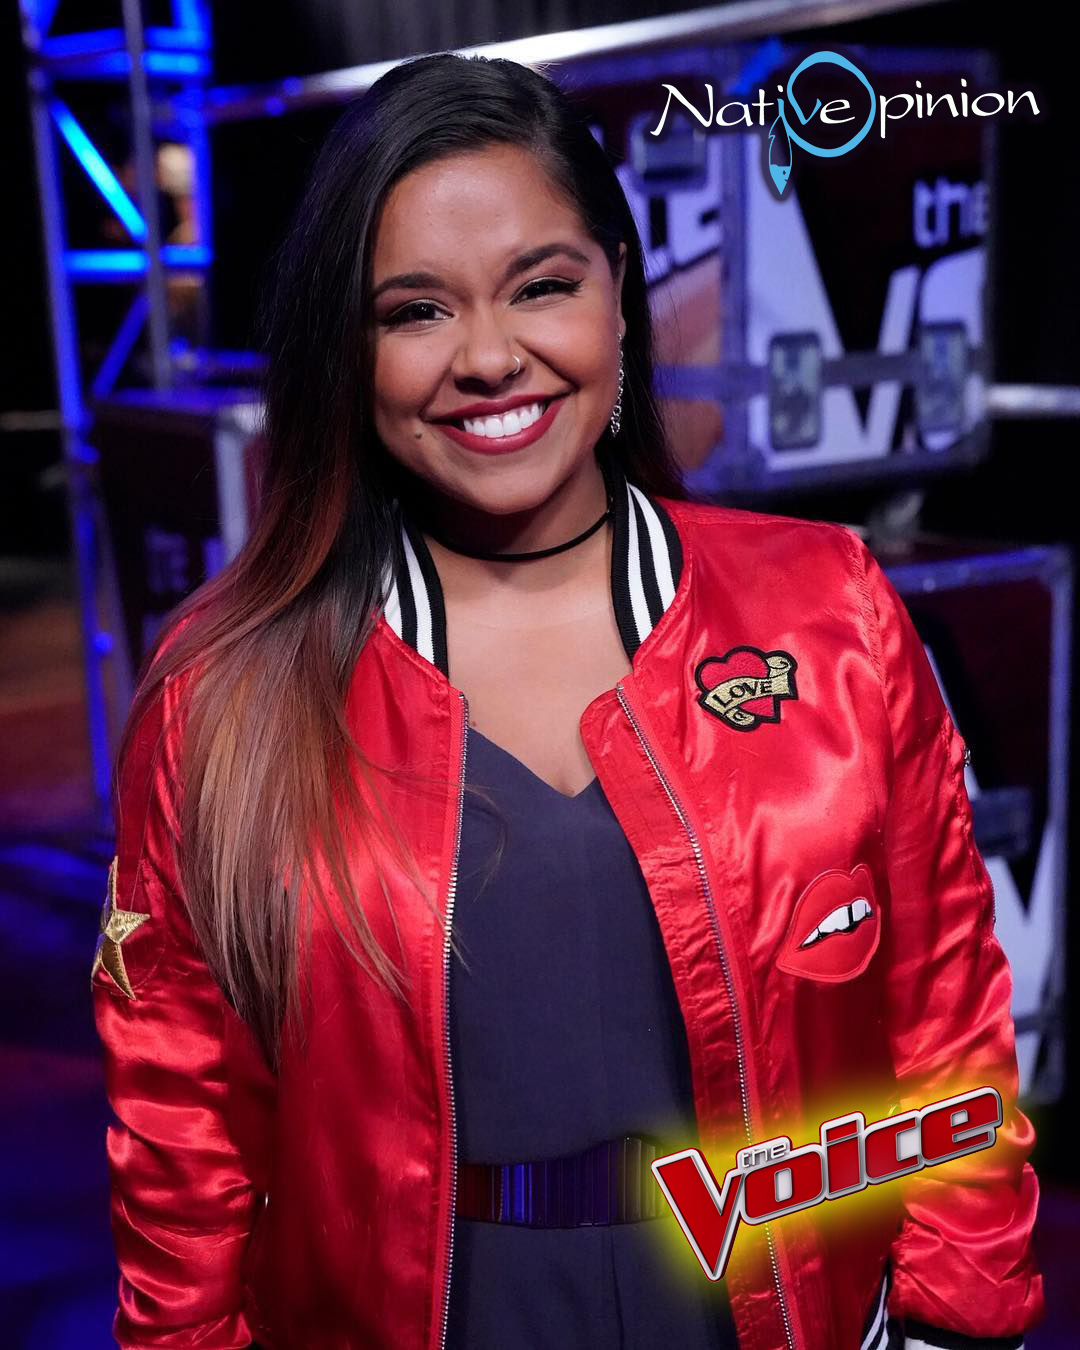 """BROOKE SIMPSON, COMPETING ON SEASON 13 OF NBC'S """"THE VOICE"""""""